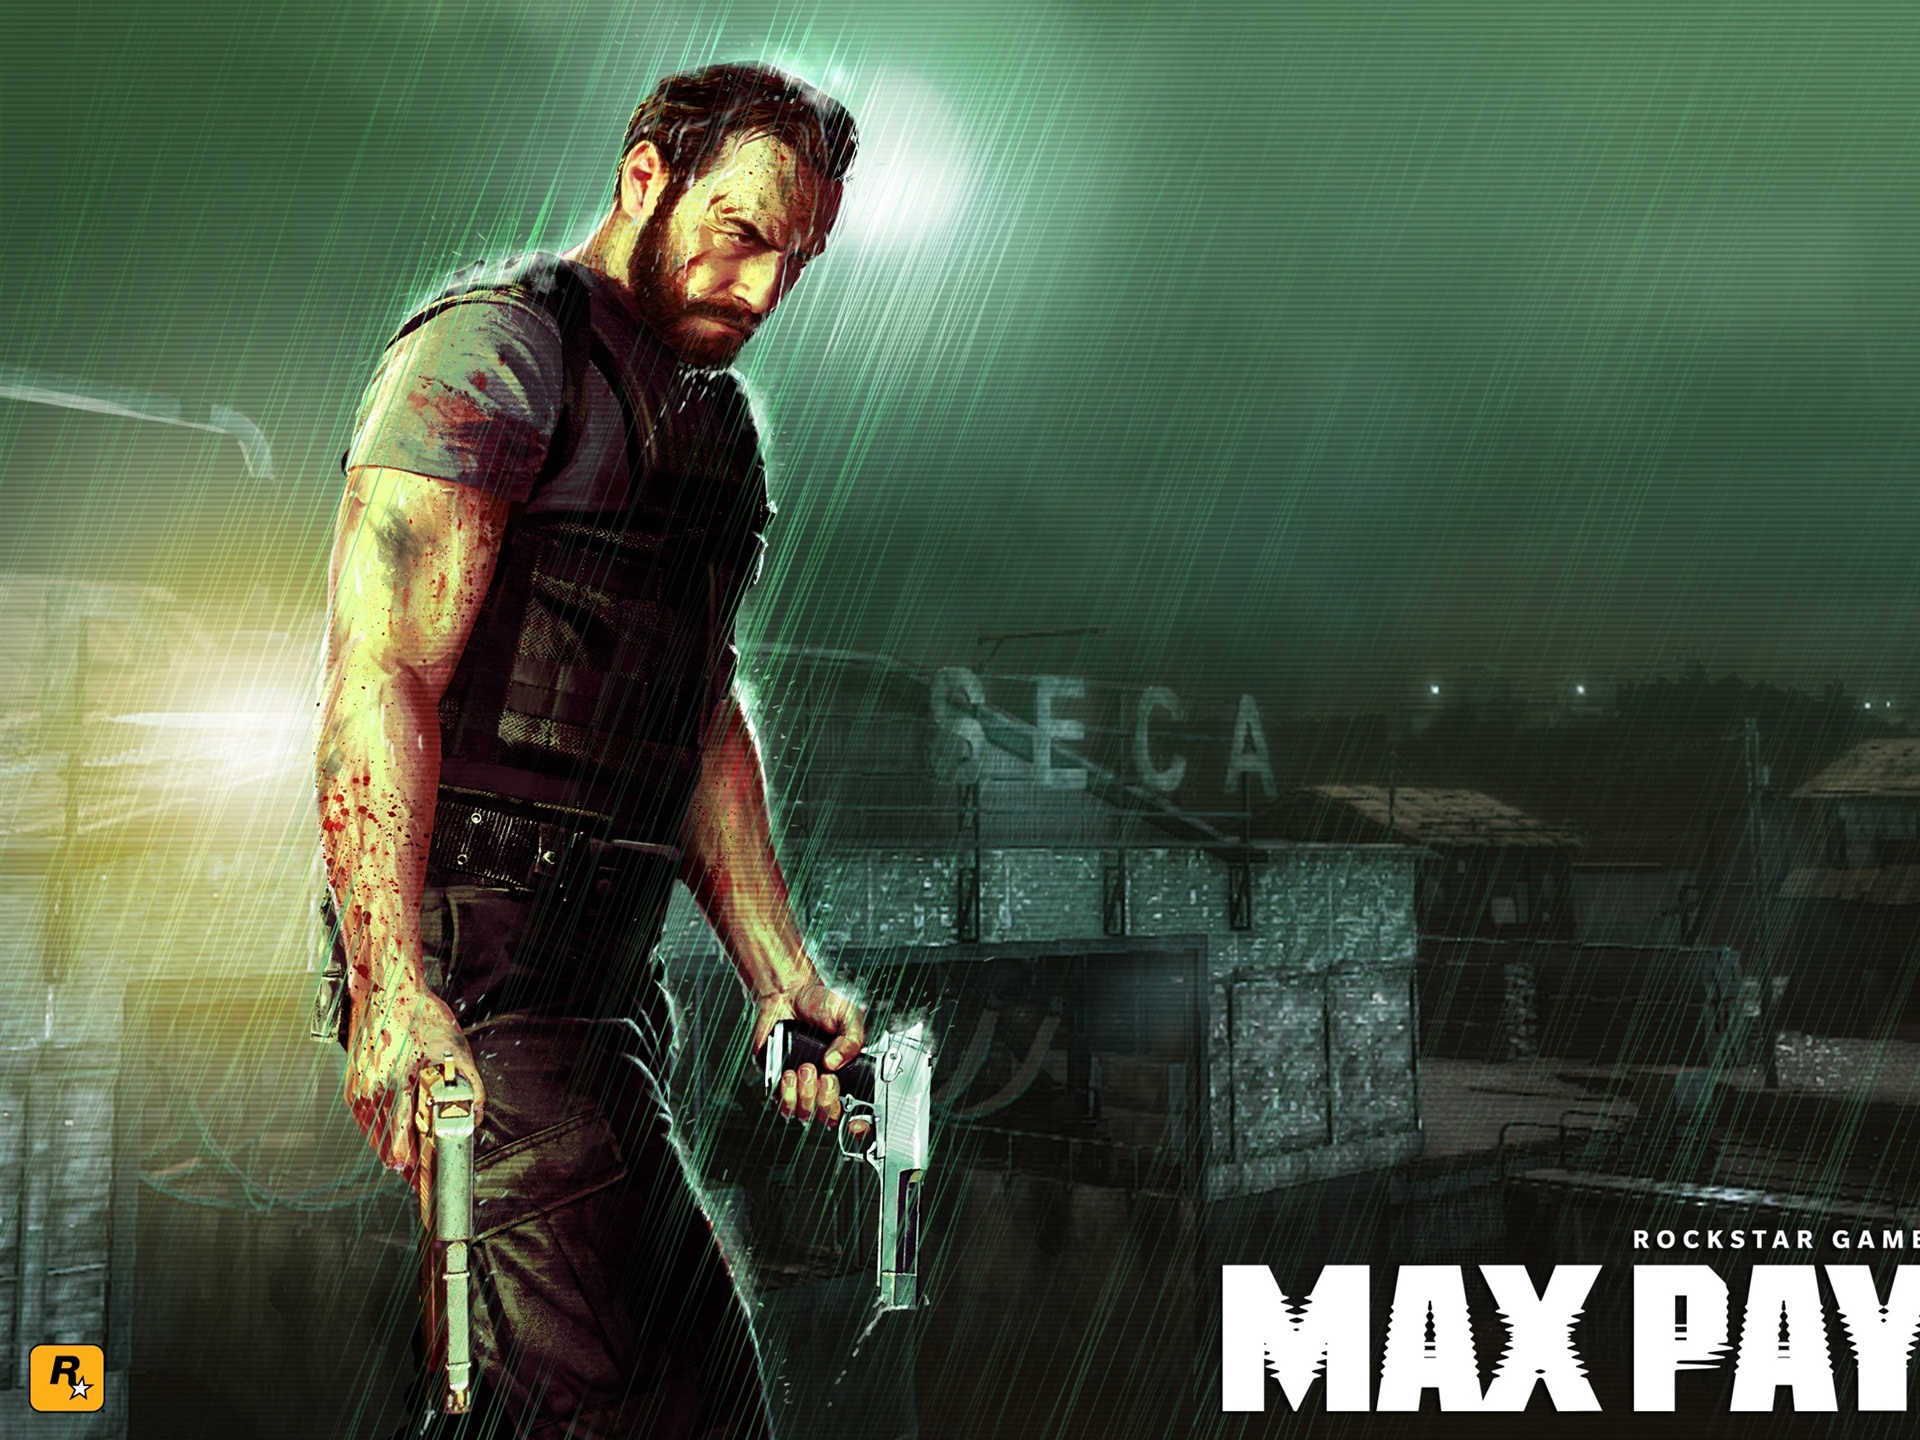 Wallpaper Max Payne 3 Hd 2560x1600 Hd Picture Image